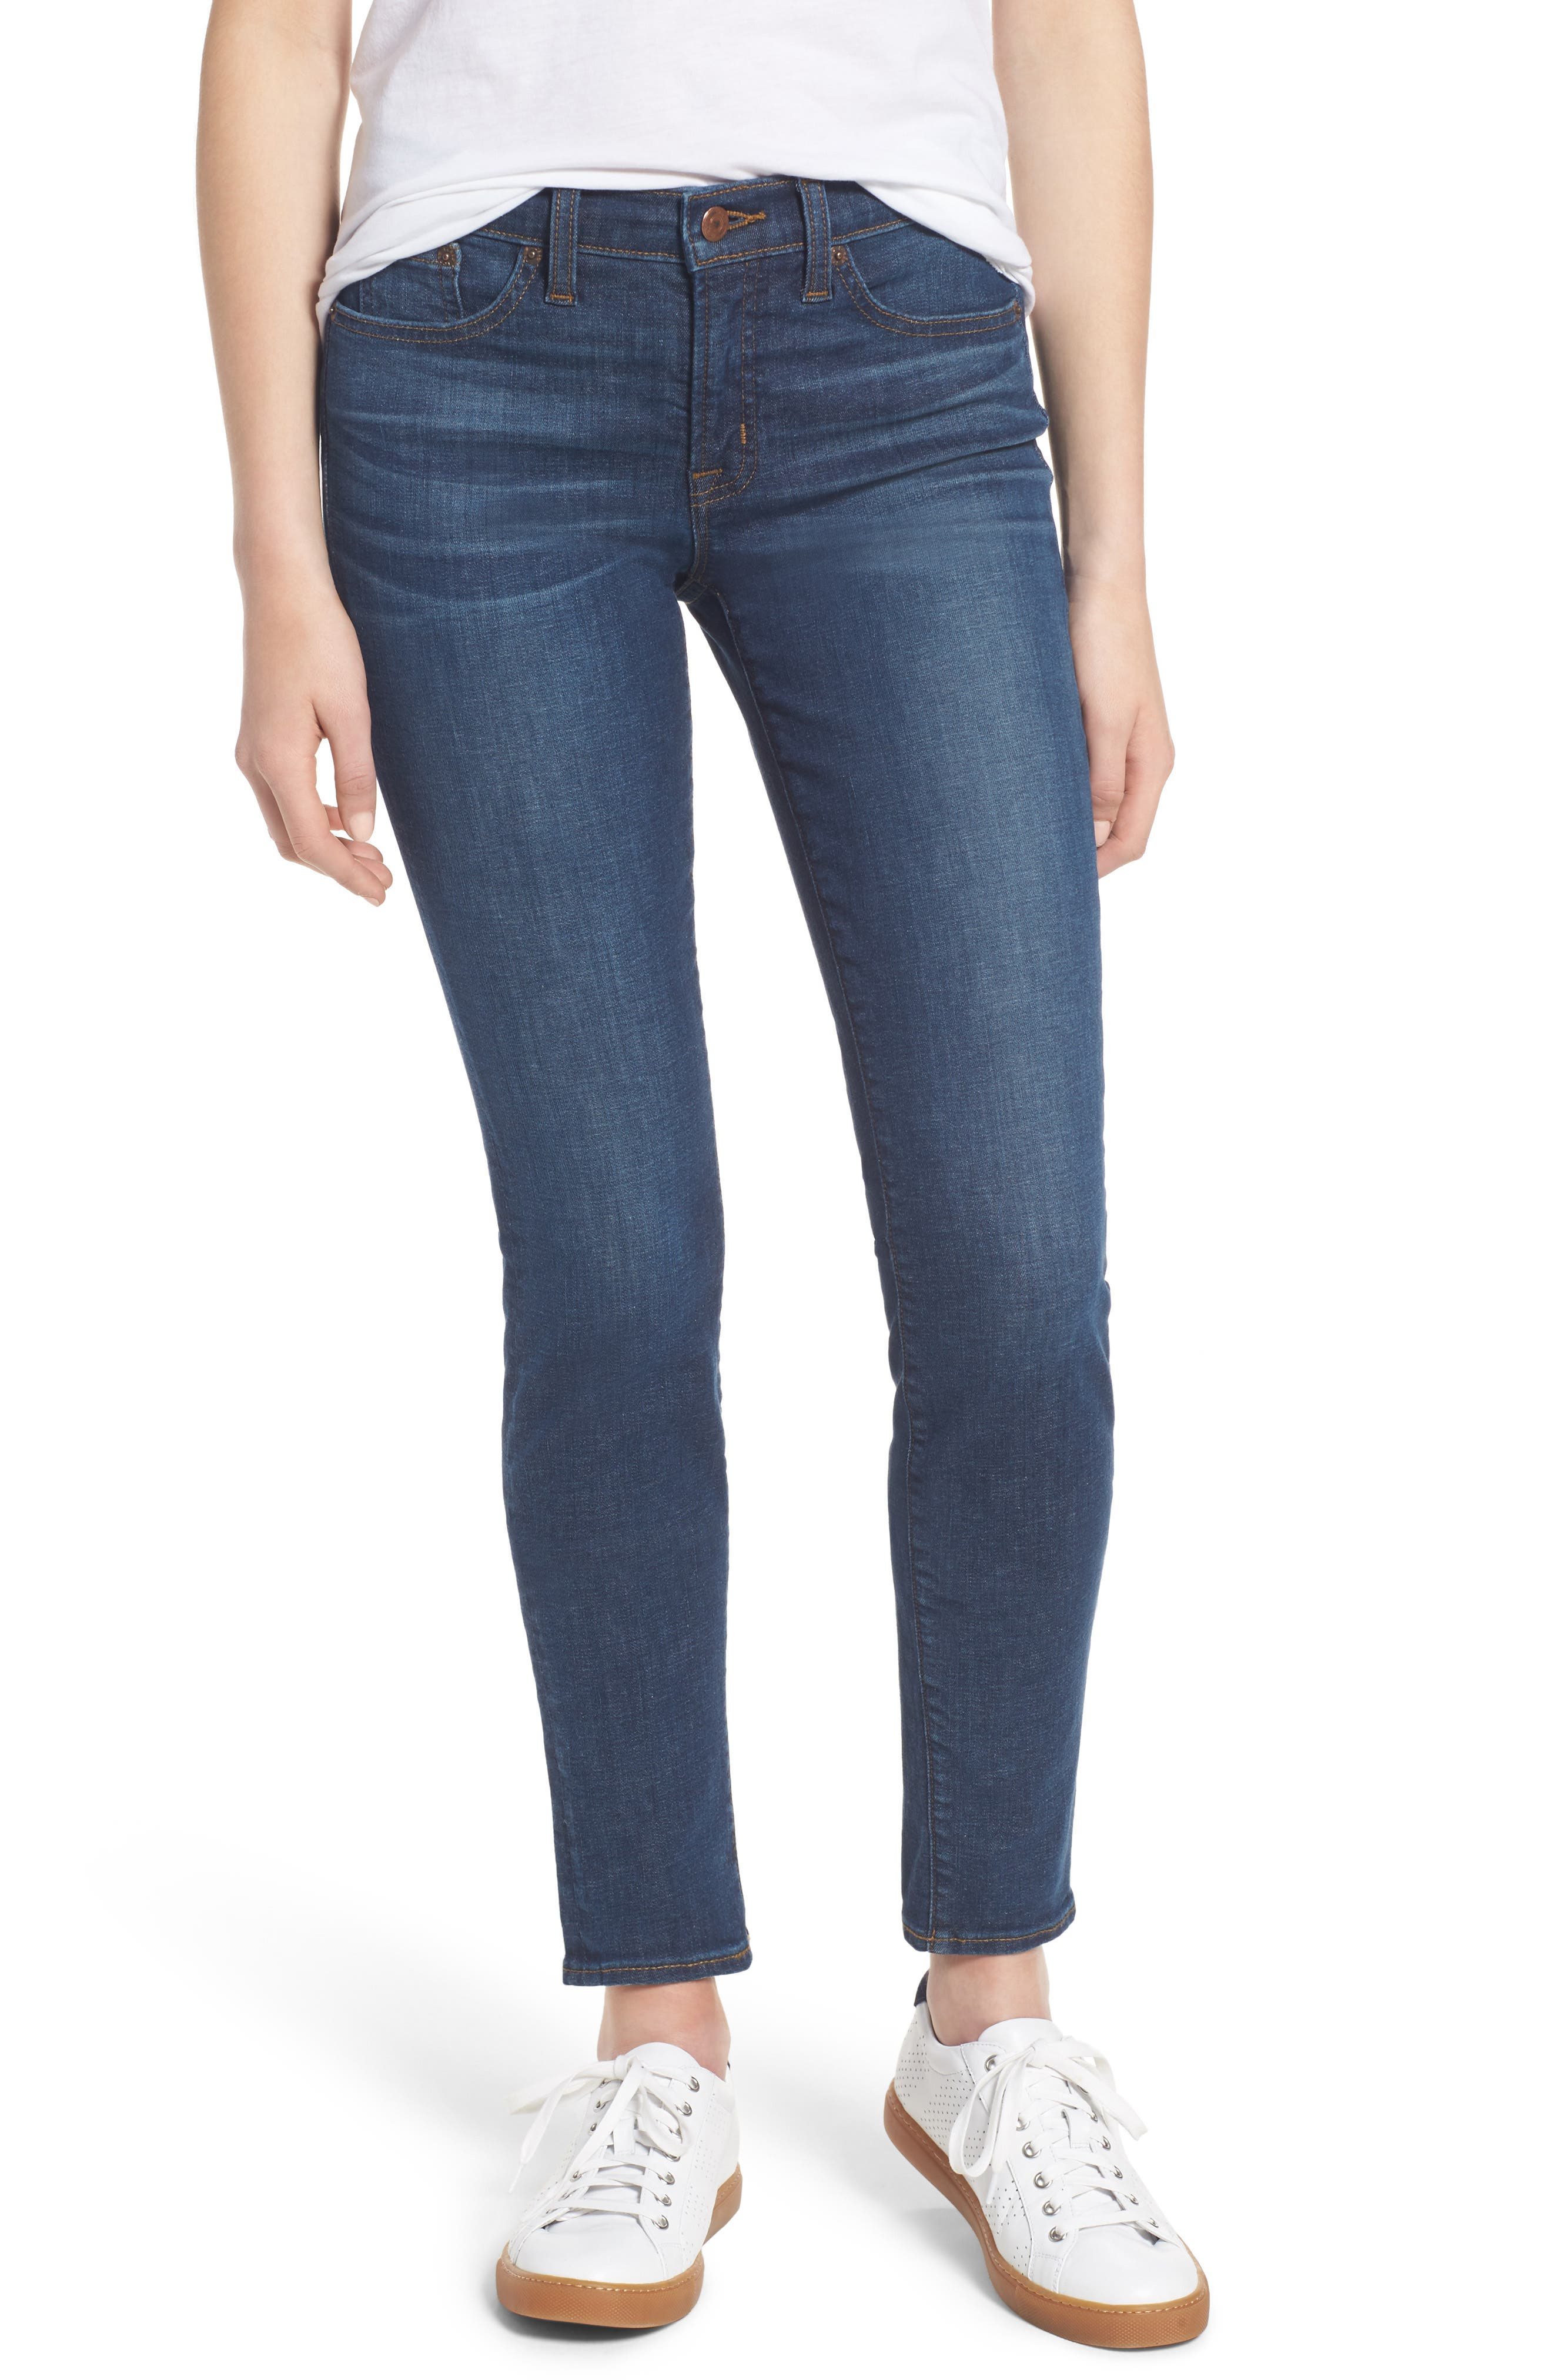 J.Crew Stretch Toothpick Jeans (Medium Miller Wash)